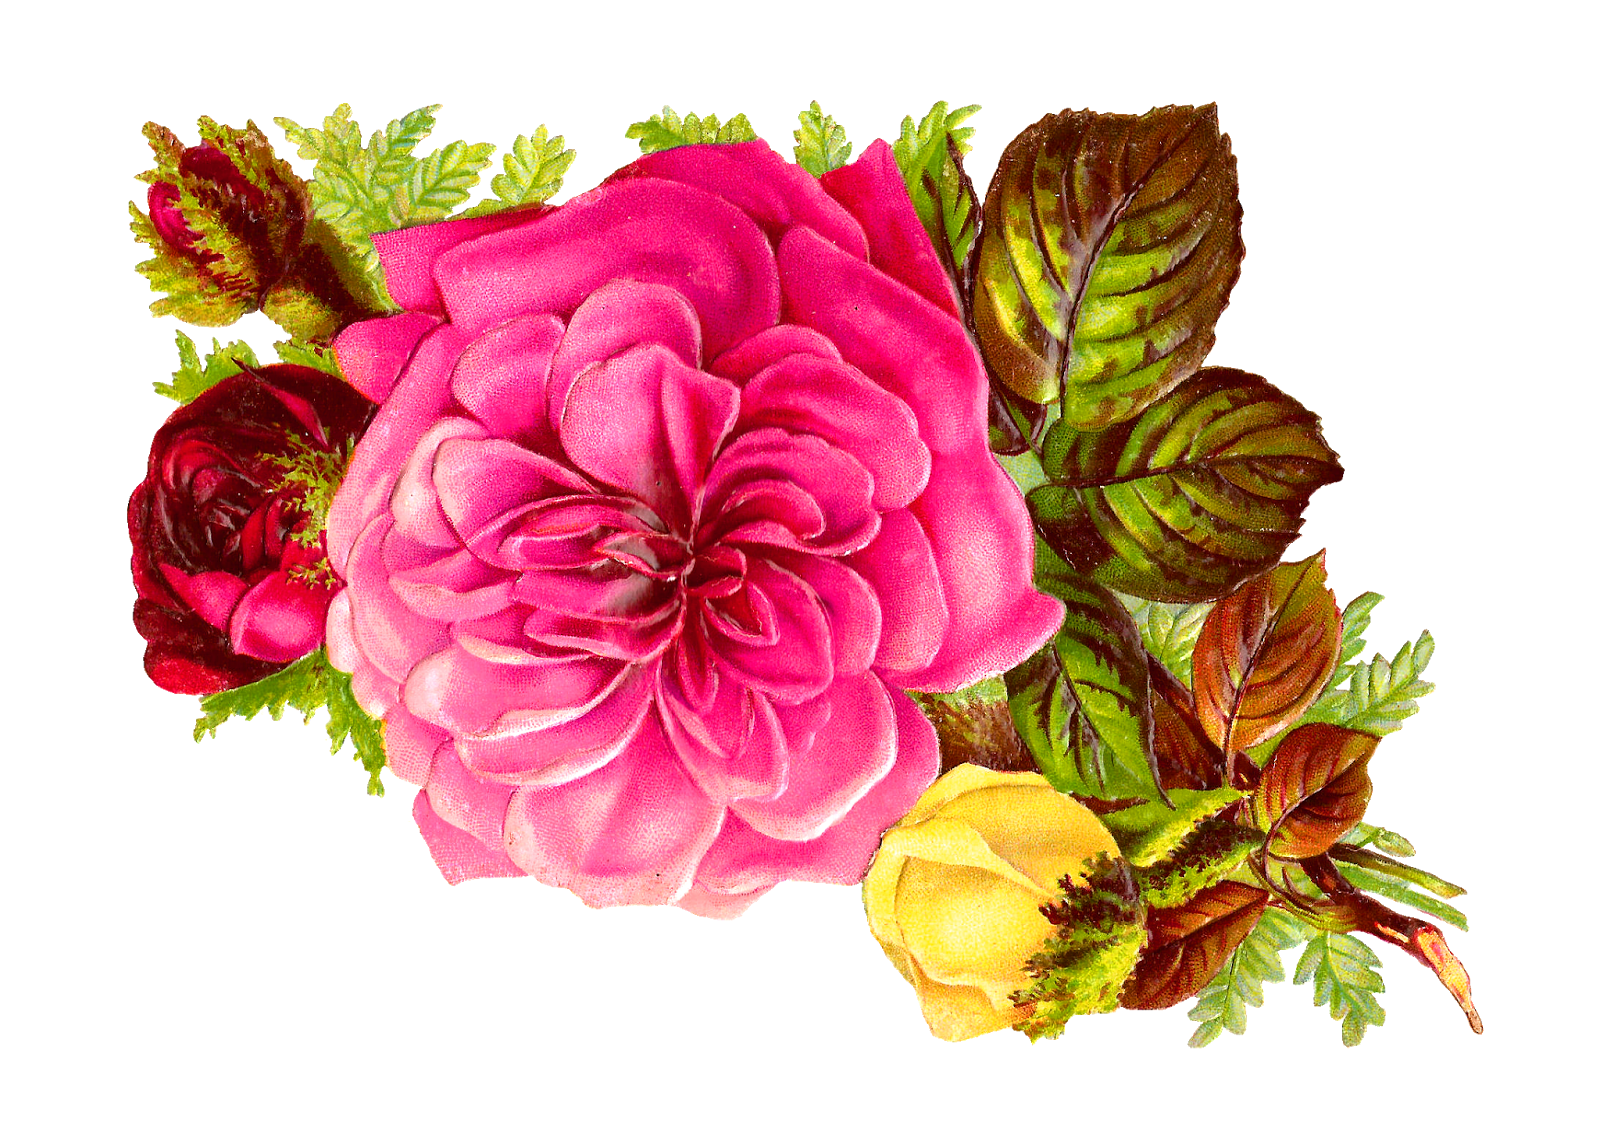 flower bouquet antique images rose bouquet clip art pink red and #34100